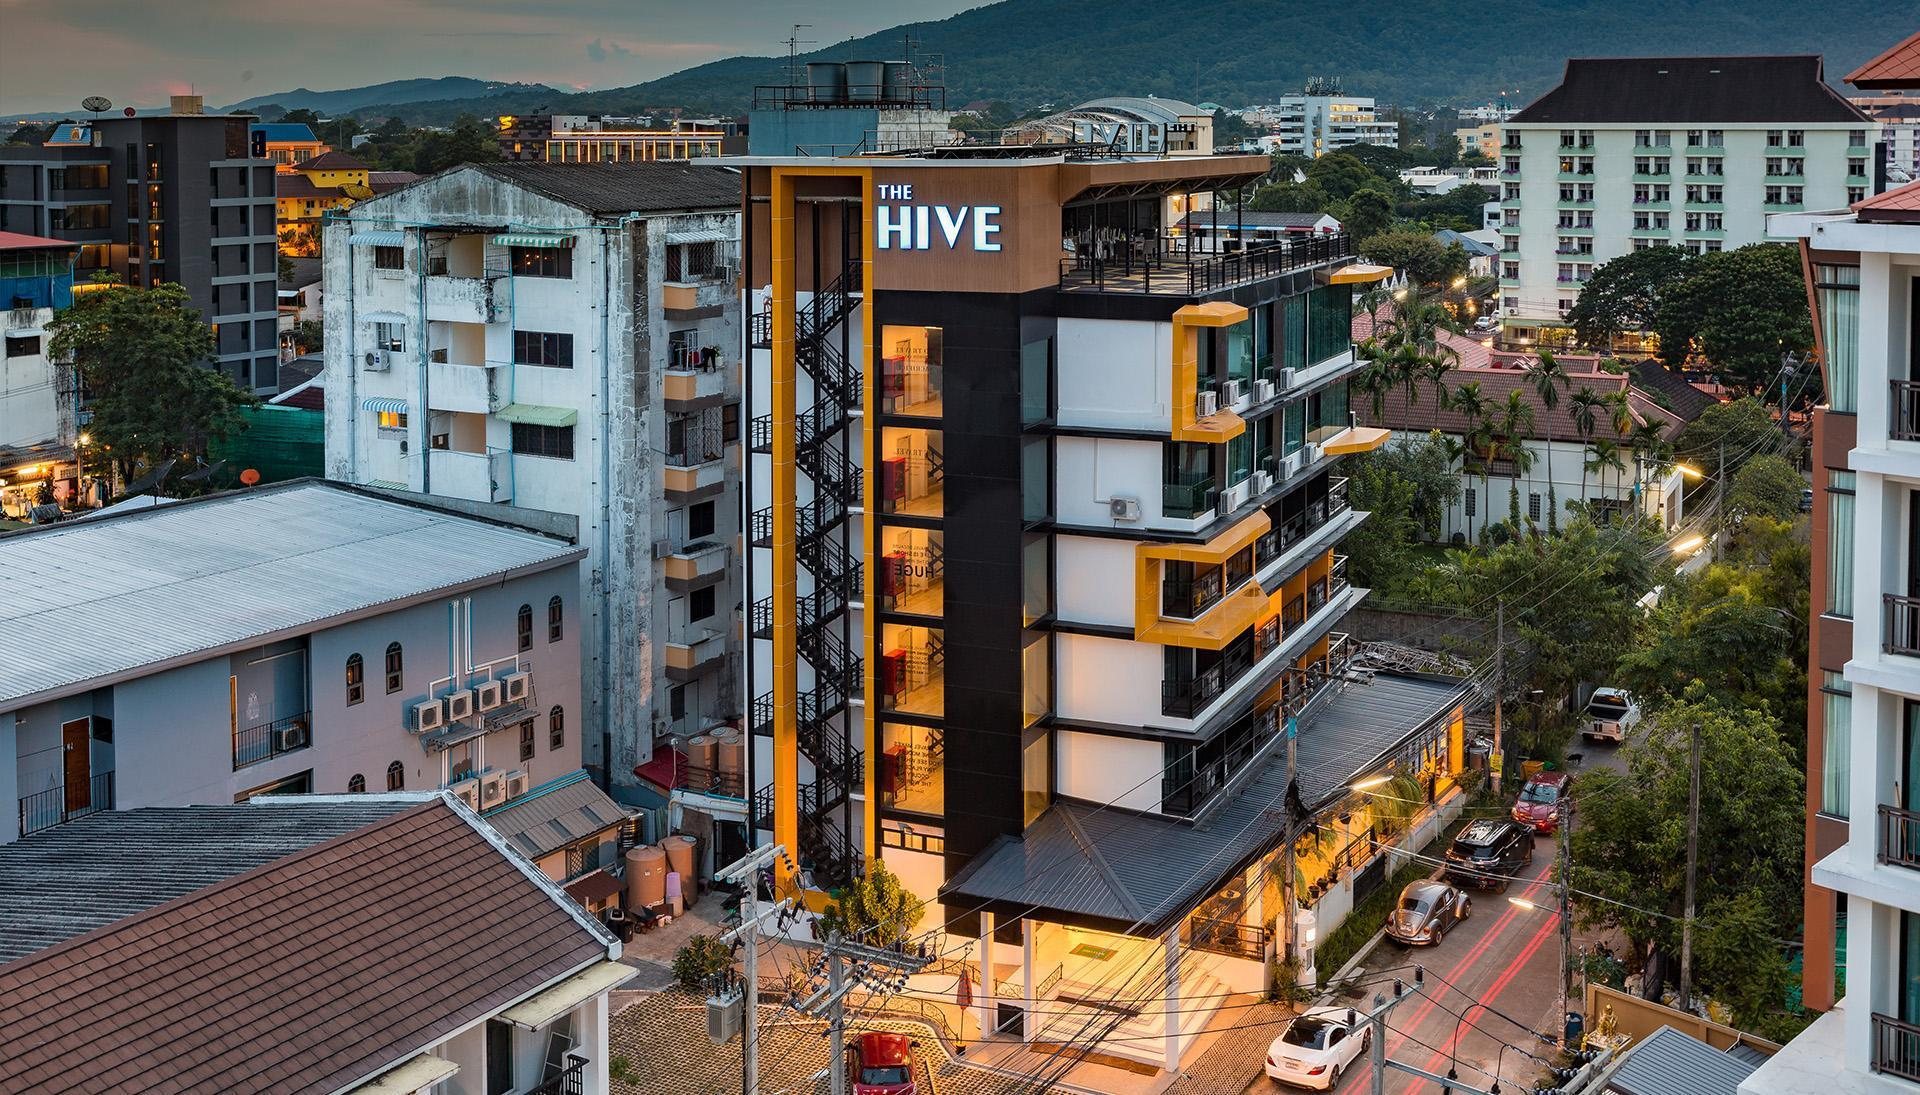 The Hive Chiang Mai The Hive Chiang Mai